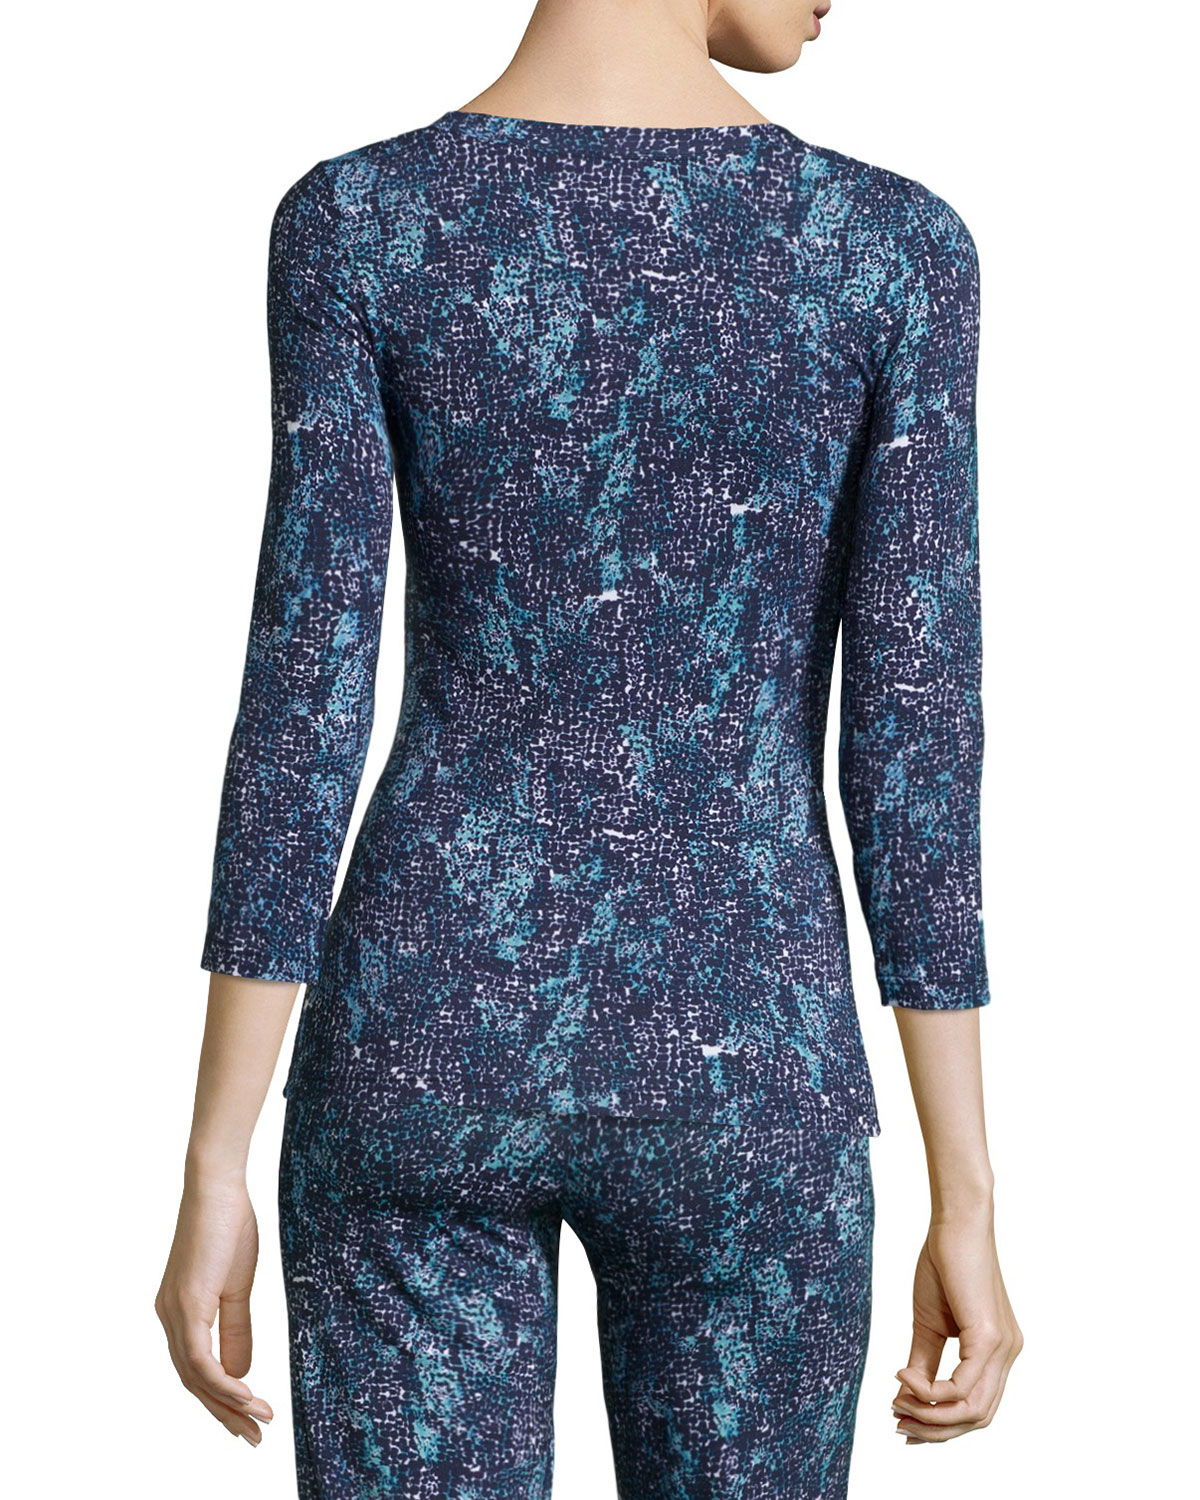 Cosabella concorde printed 3 4 sleeve lounge top in blue for 20 34 35 dress shirts